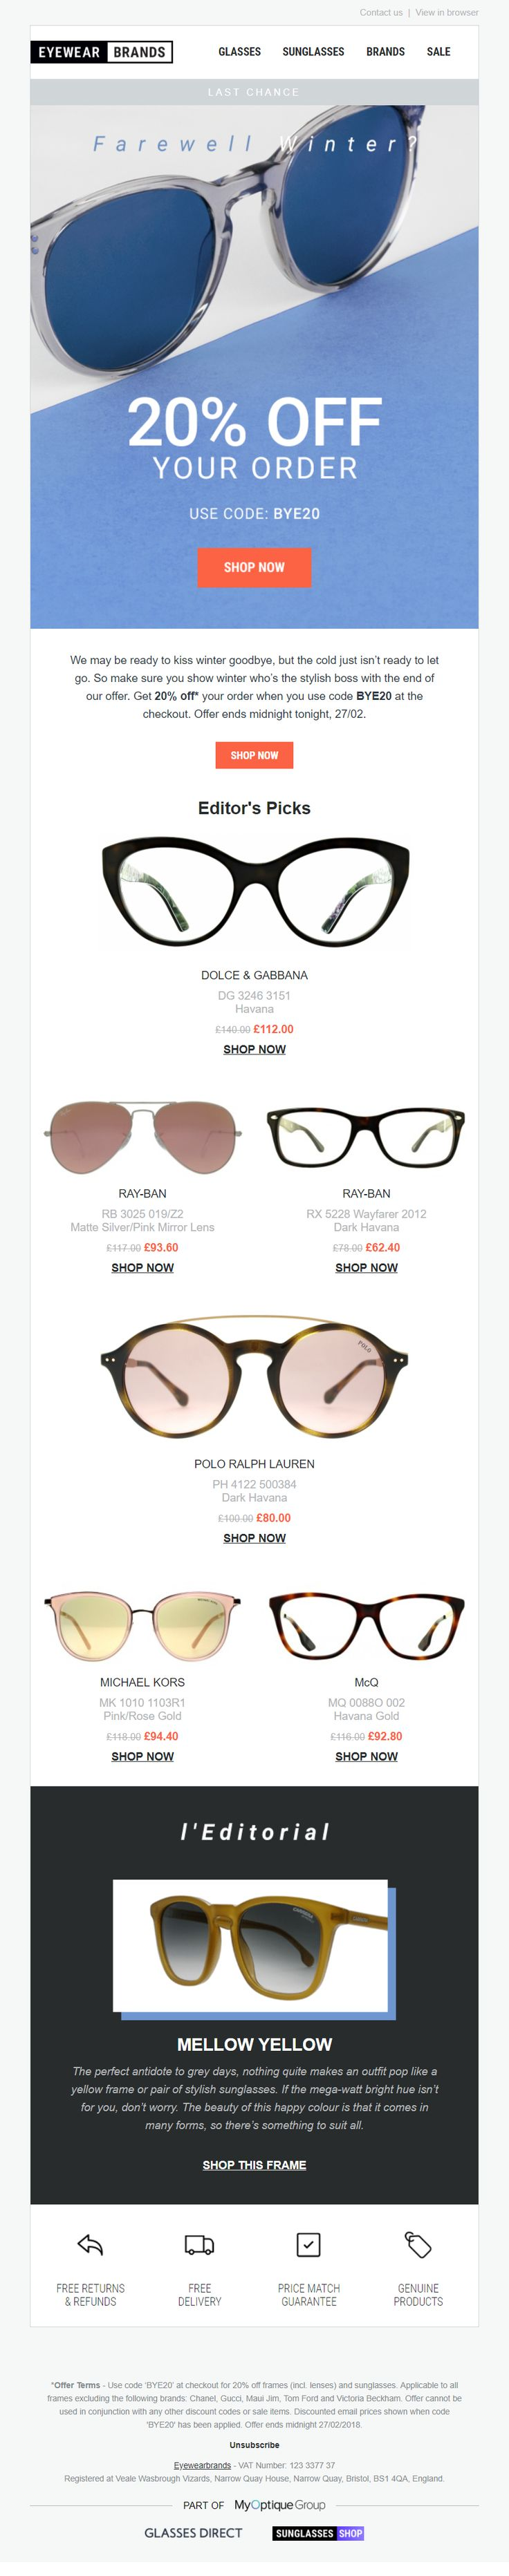 Cold weather email from Eyewear Brands EmailMarketing